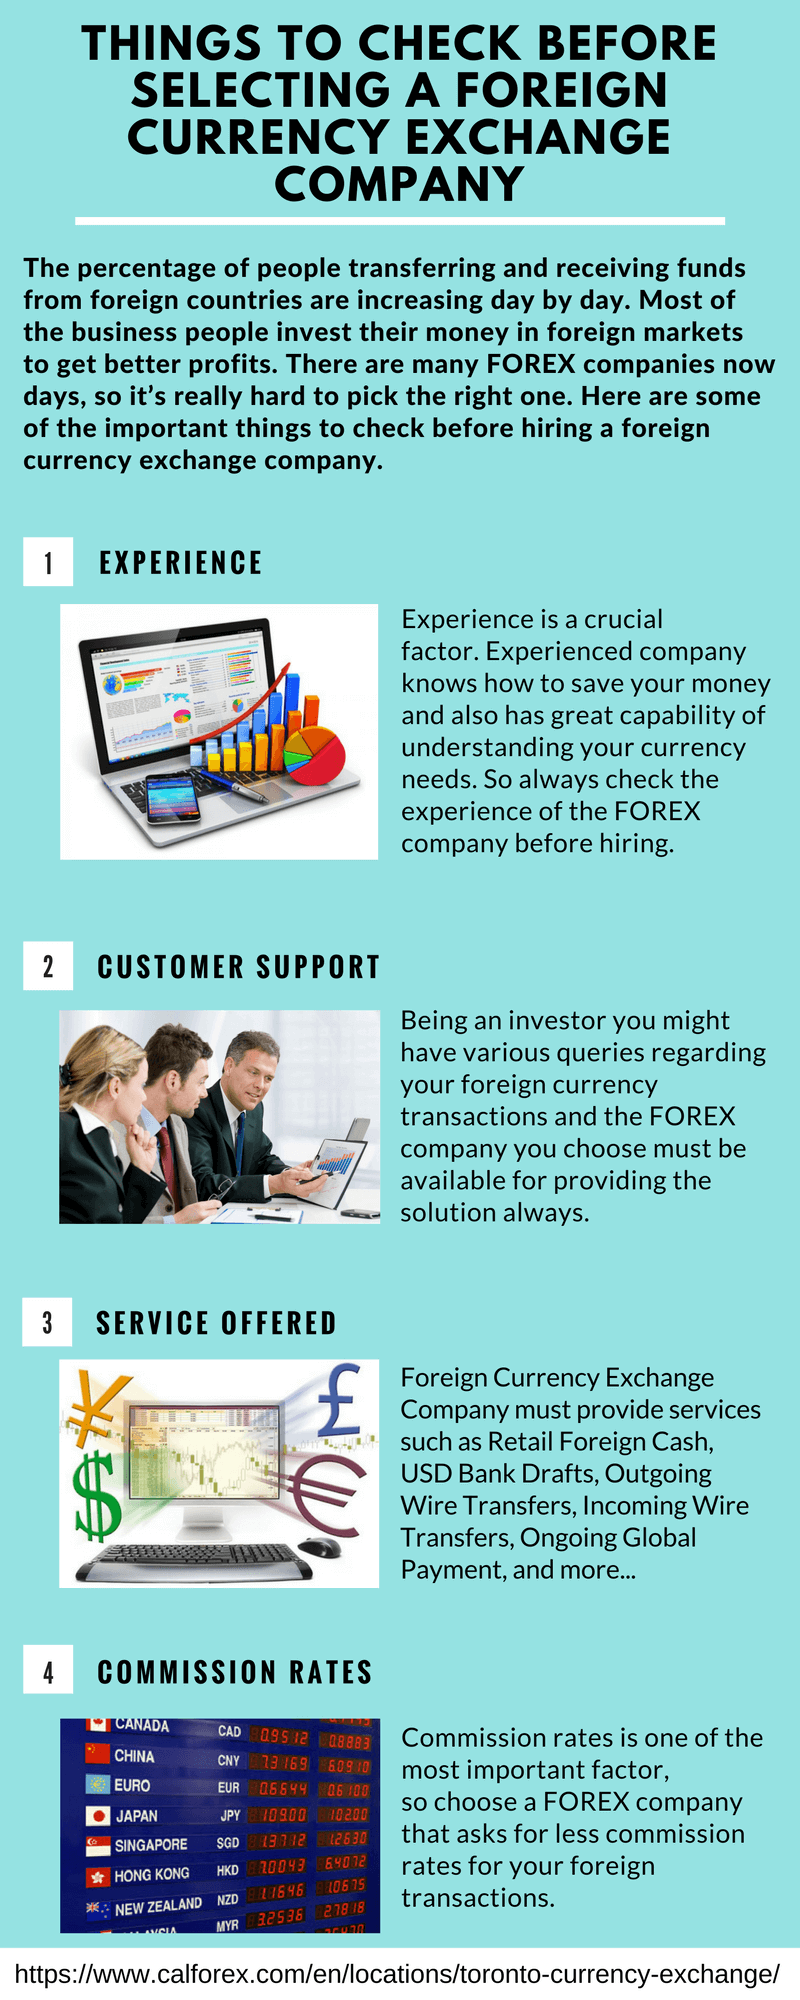 things-to-check-before-selecting-a-foreign-currency-exchange-company-infographic-plaza